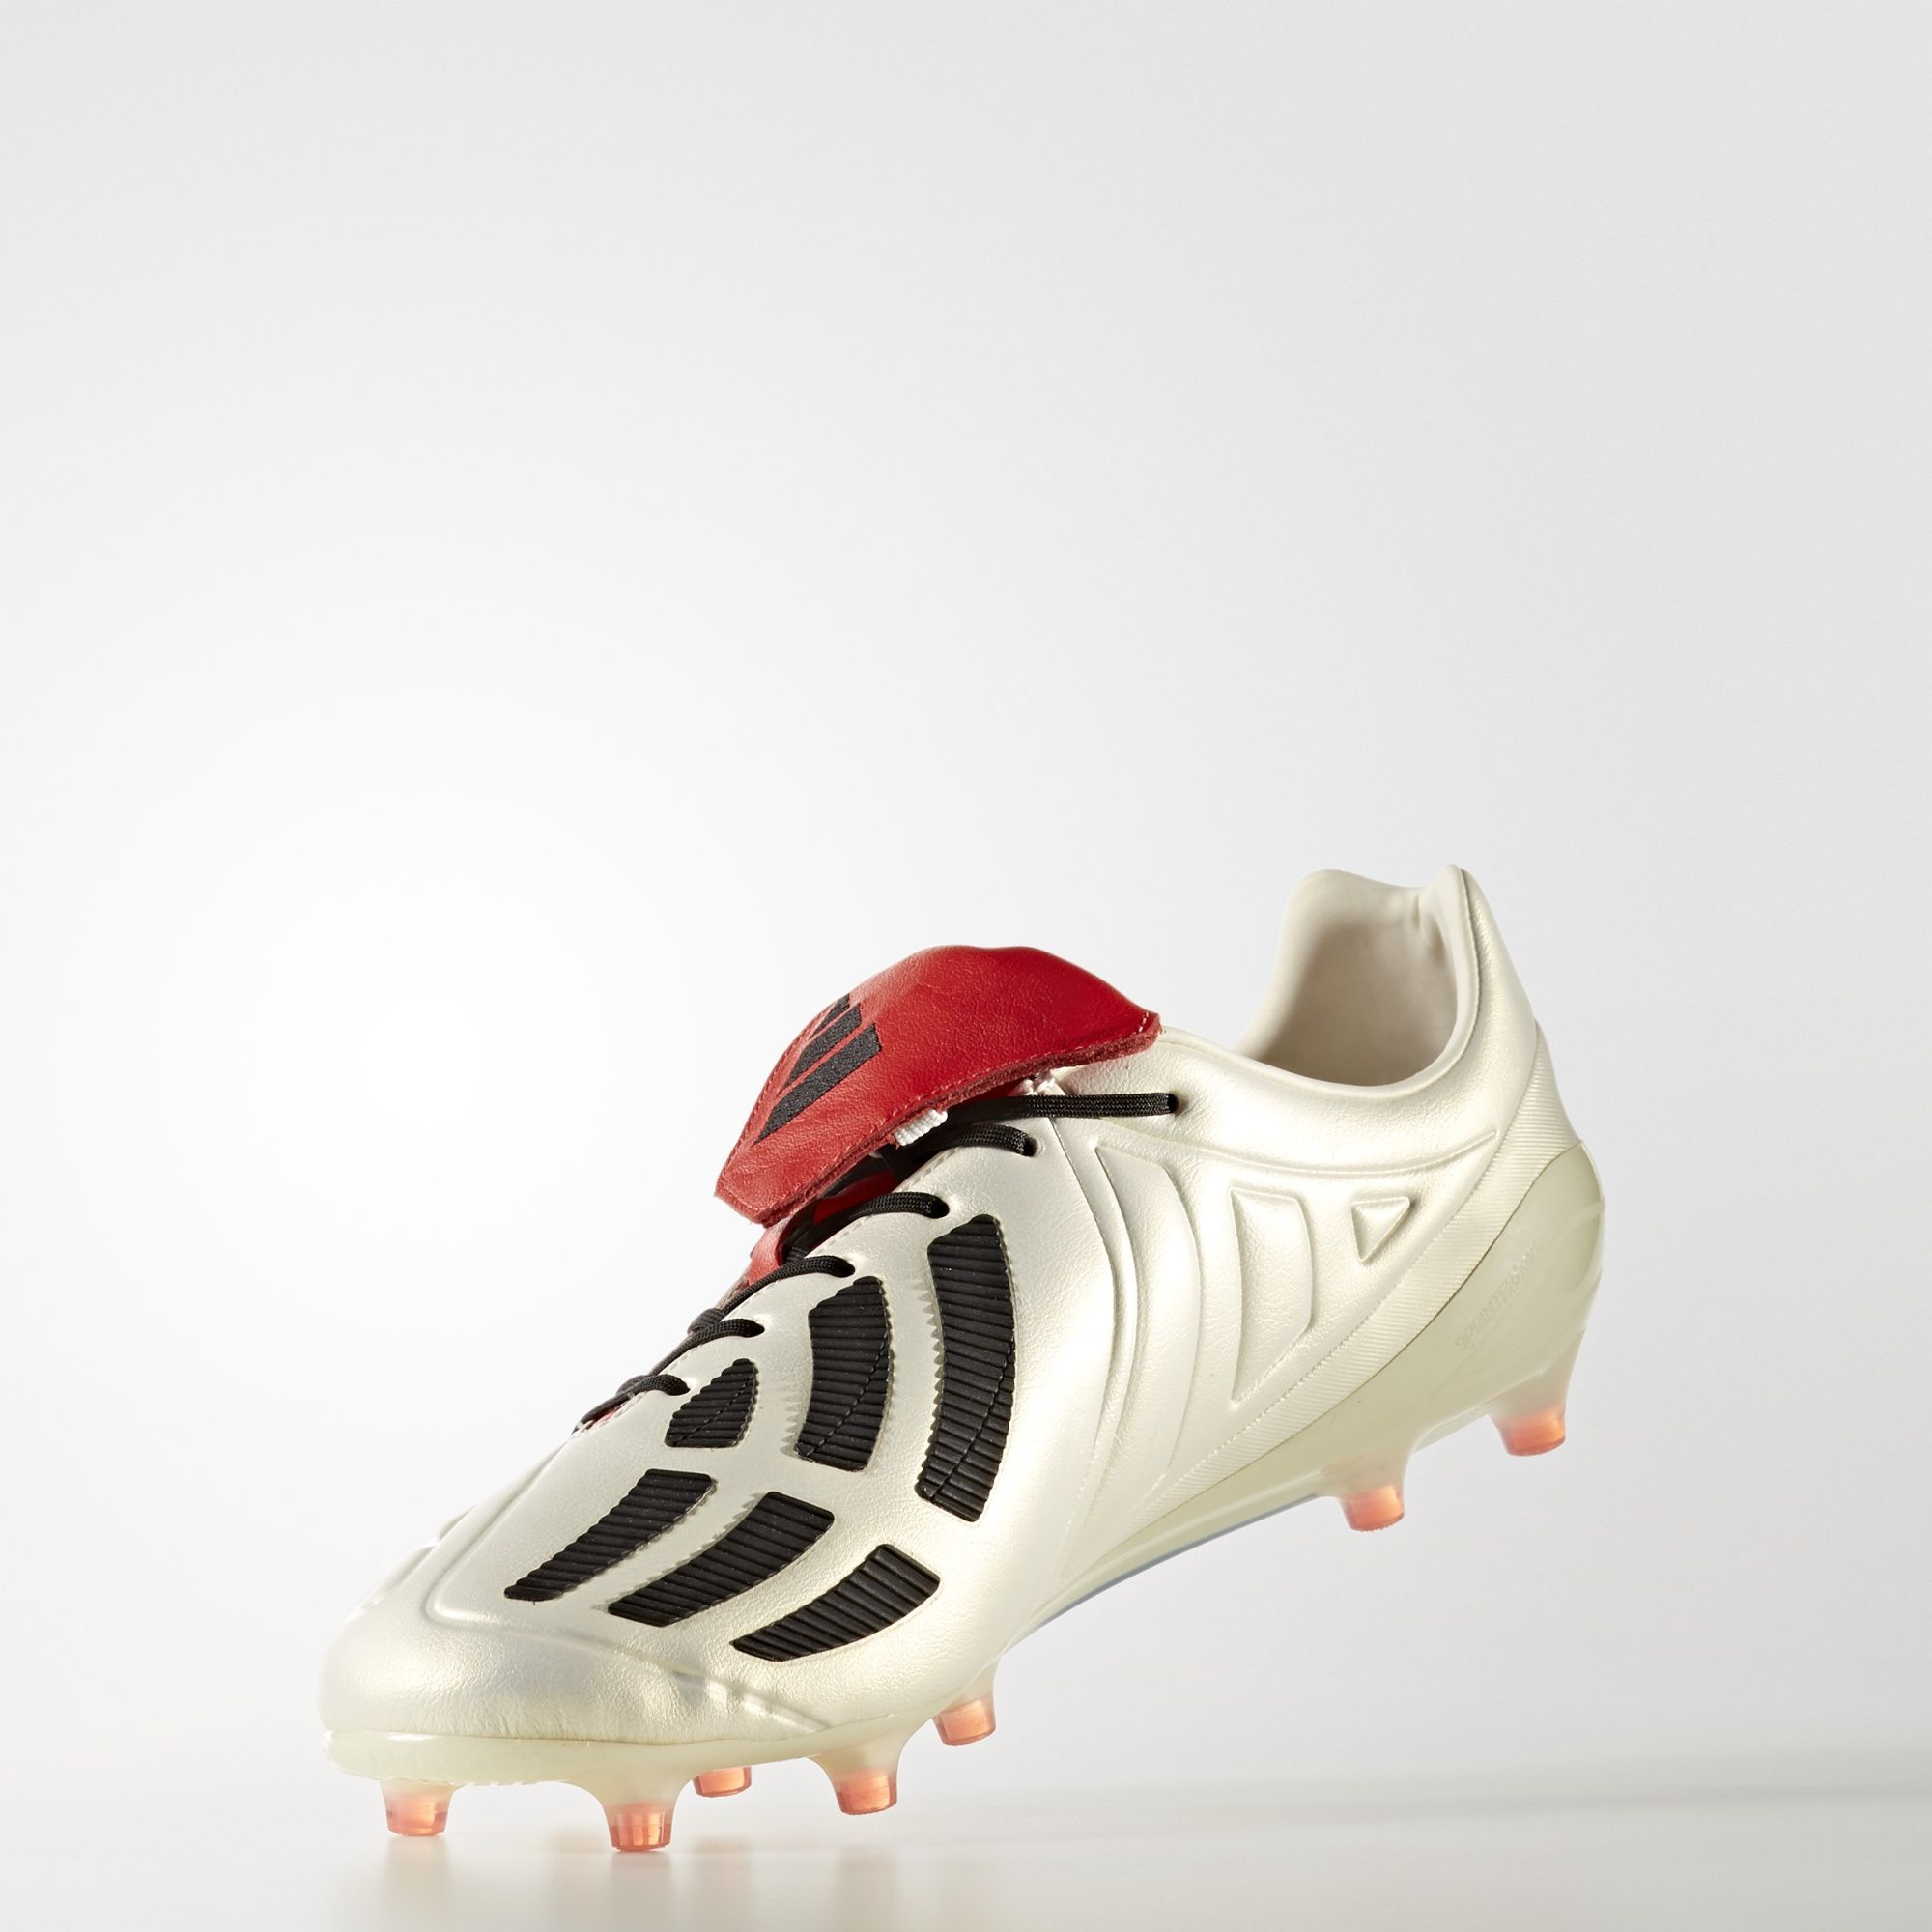 83363d142461 ... Click to enlarge image  adidas_predator_mania_champagne_firm_ground_boots_off_white_core_black_red_d.jpg  ...